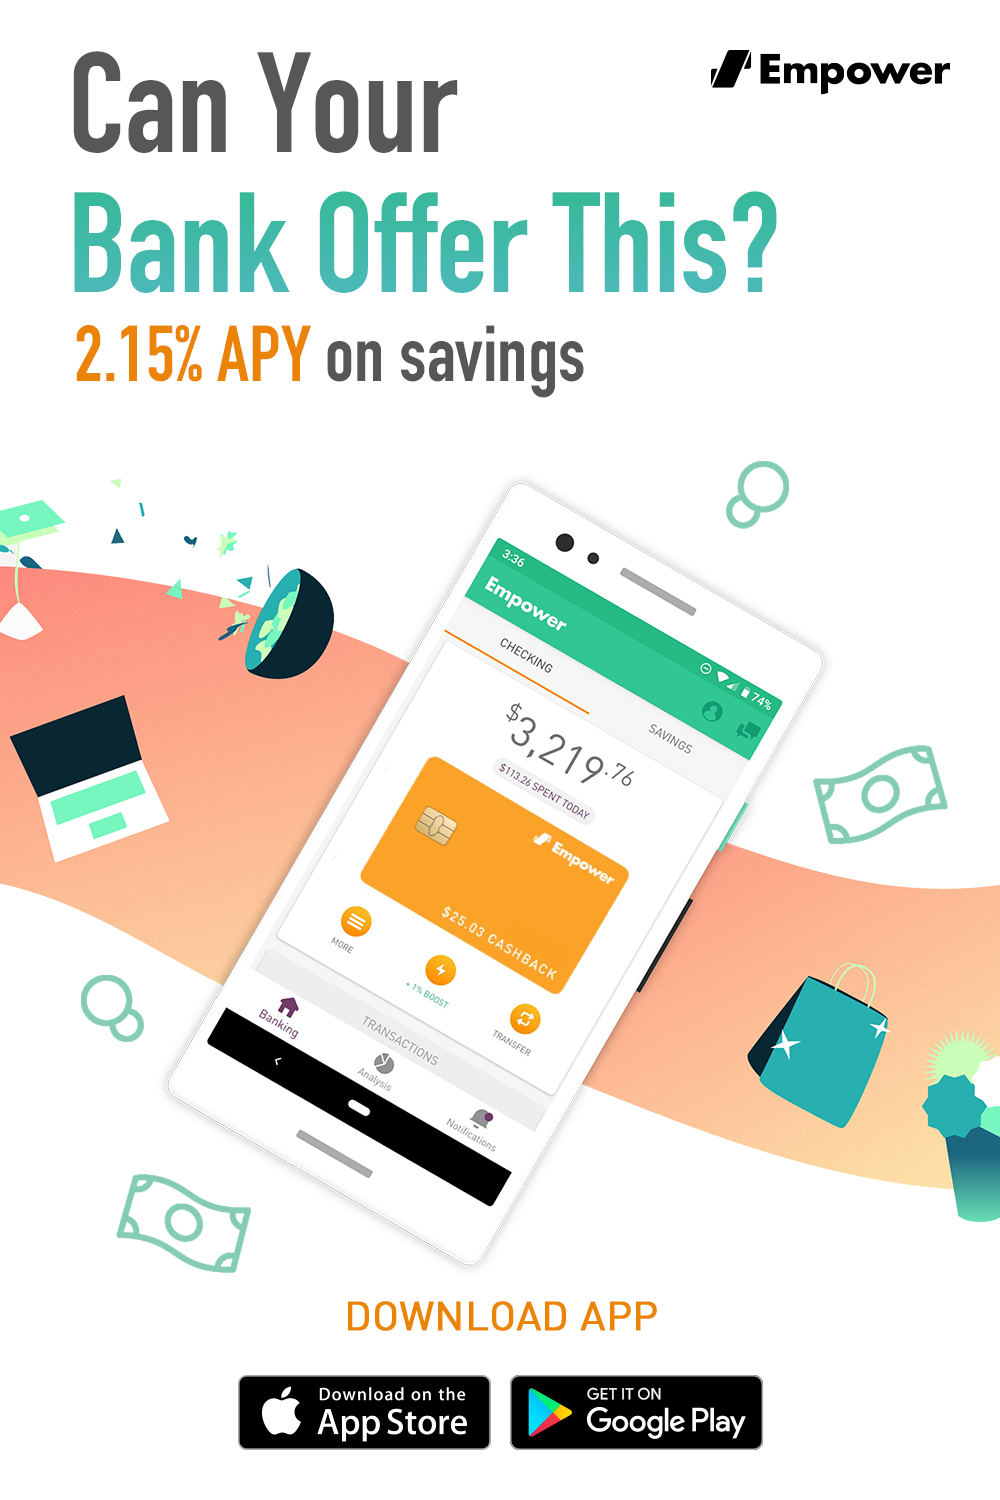 Reward yourself with a better bank. Earn 2.15 APY on